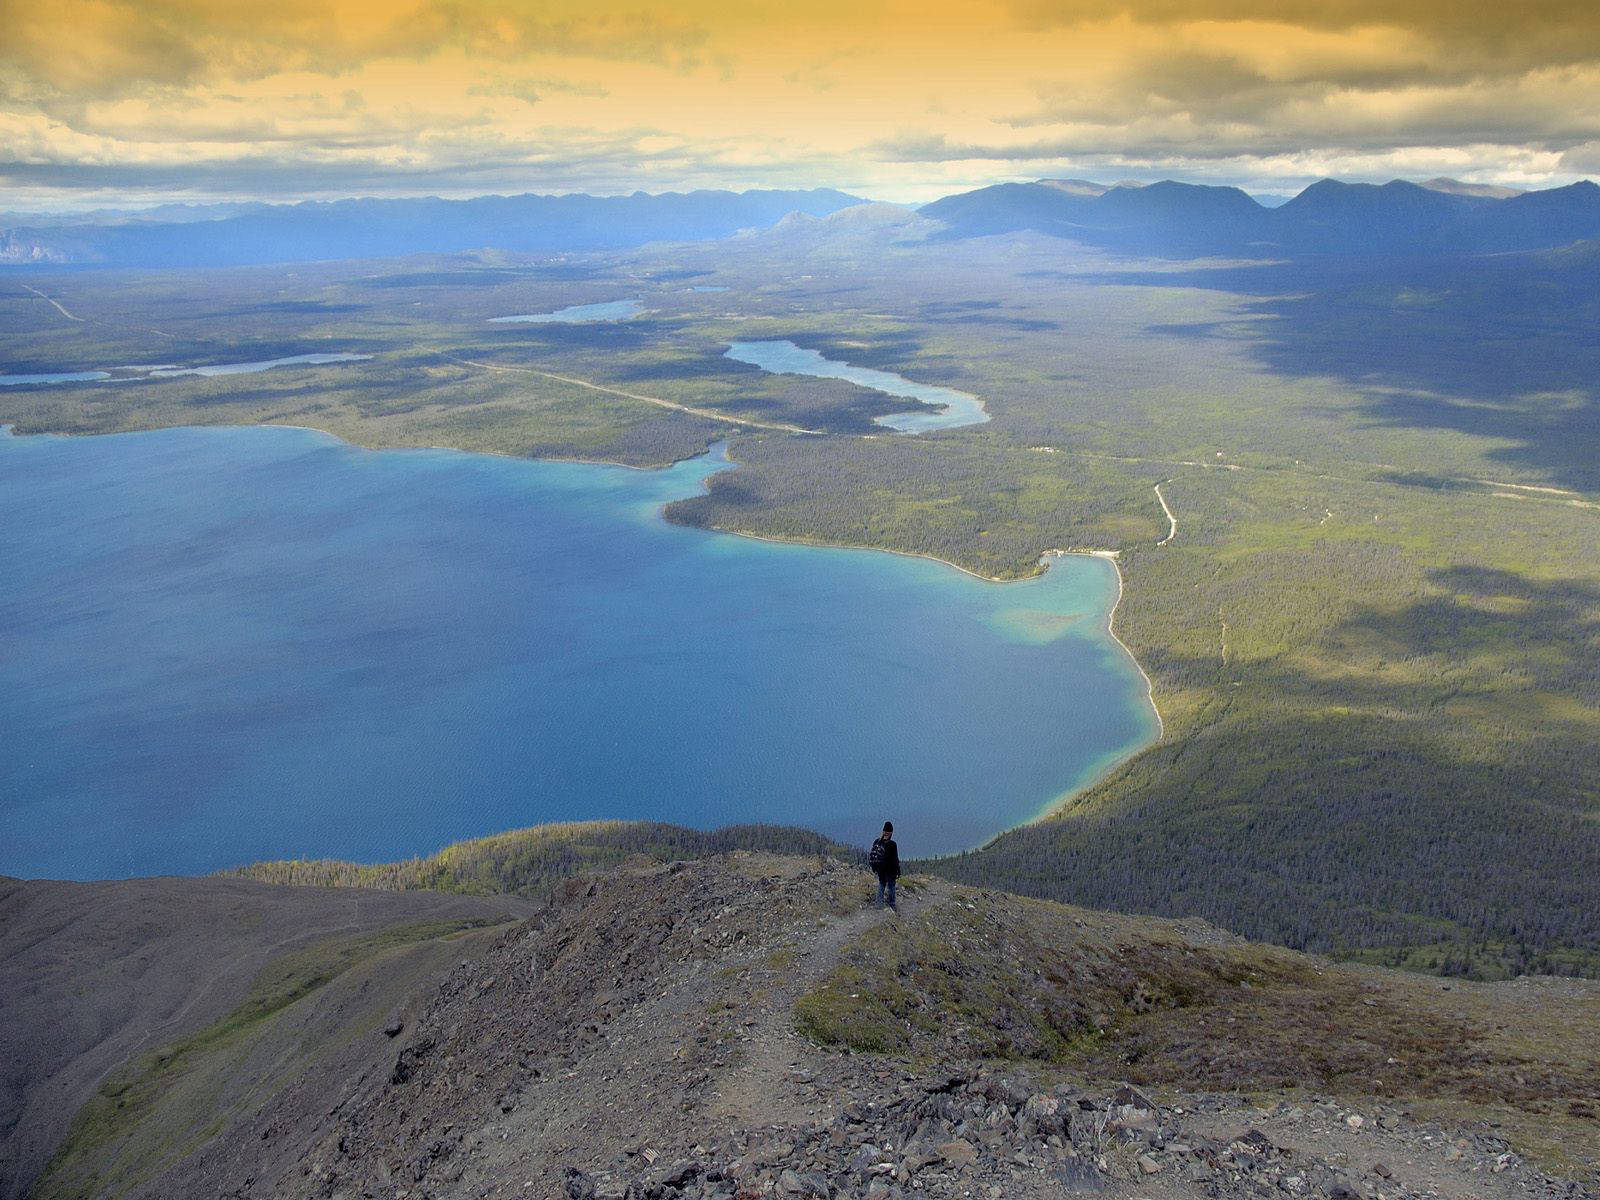 kathleen_lake_view_from_kings_throne_trail_kluane_national_park_canada.jpg